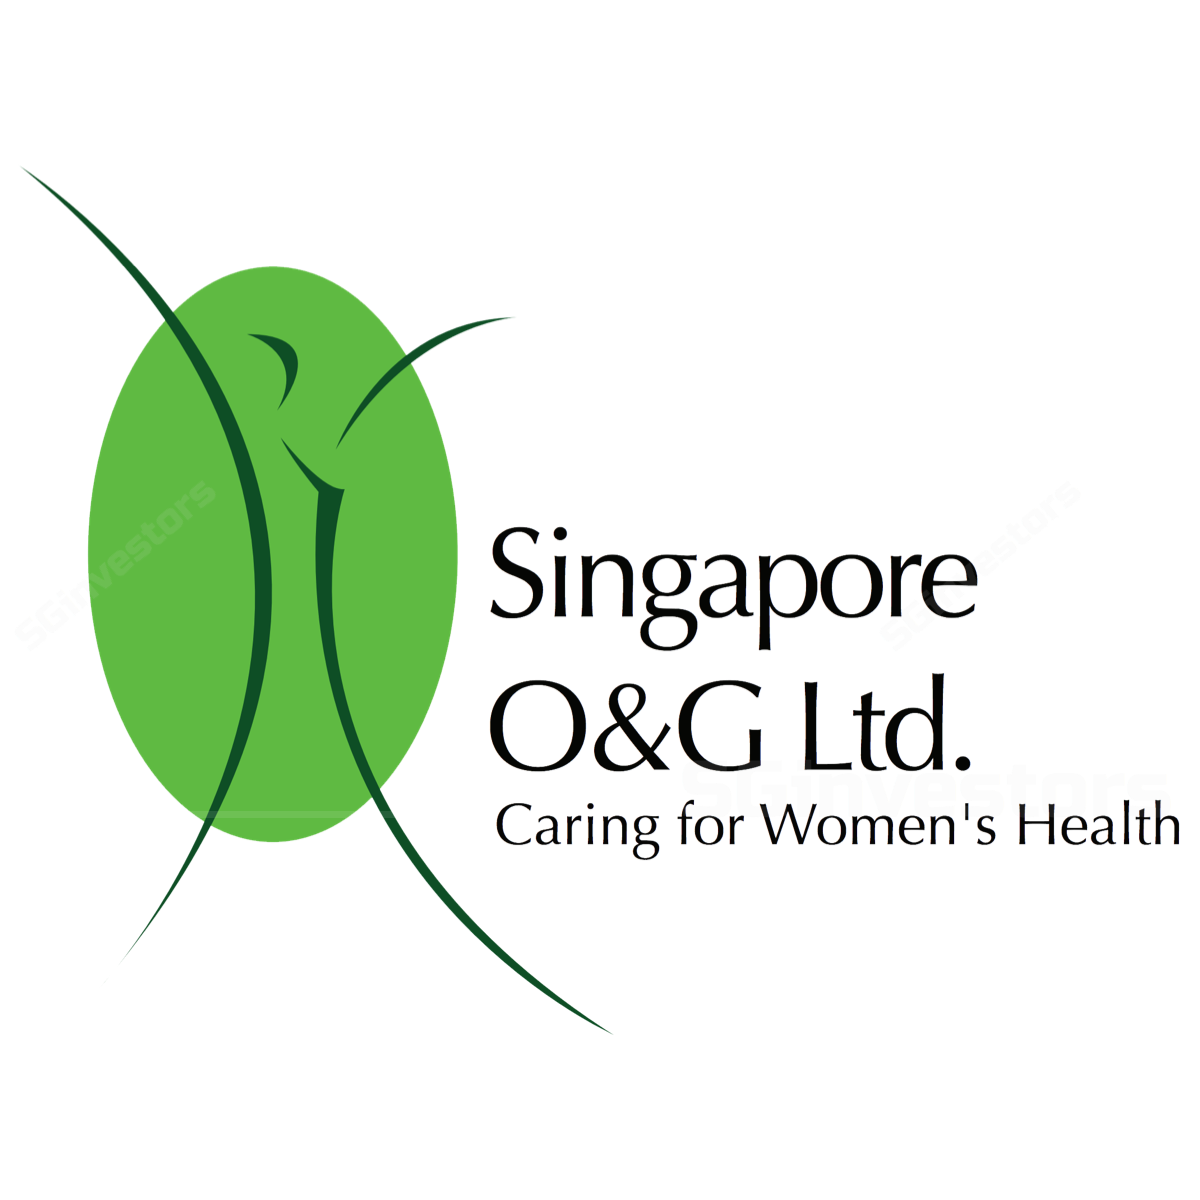 Singapore O&G (SOG SP) - UOB Kay Hian 2017-10-16: Expect A Strong 2H17 On Healthy Operational And Industry Outlook